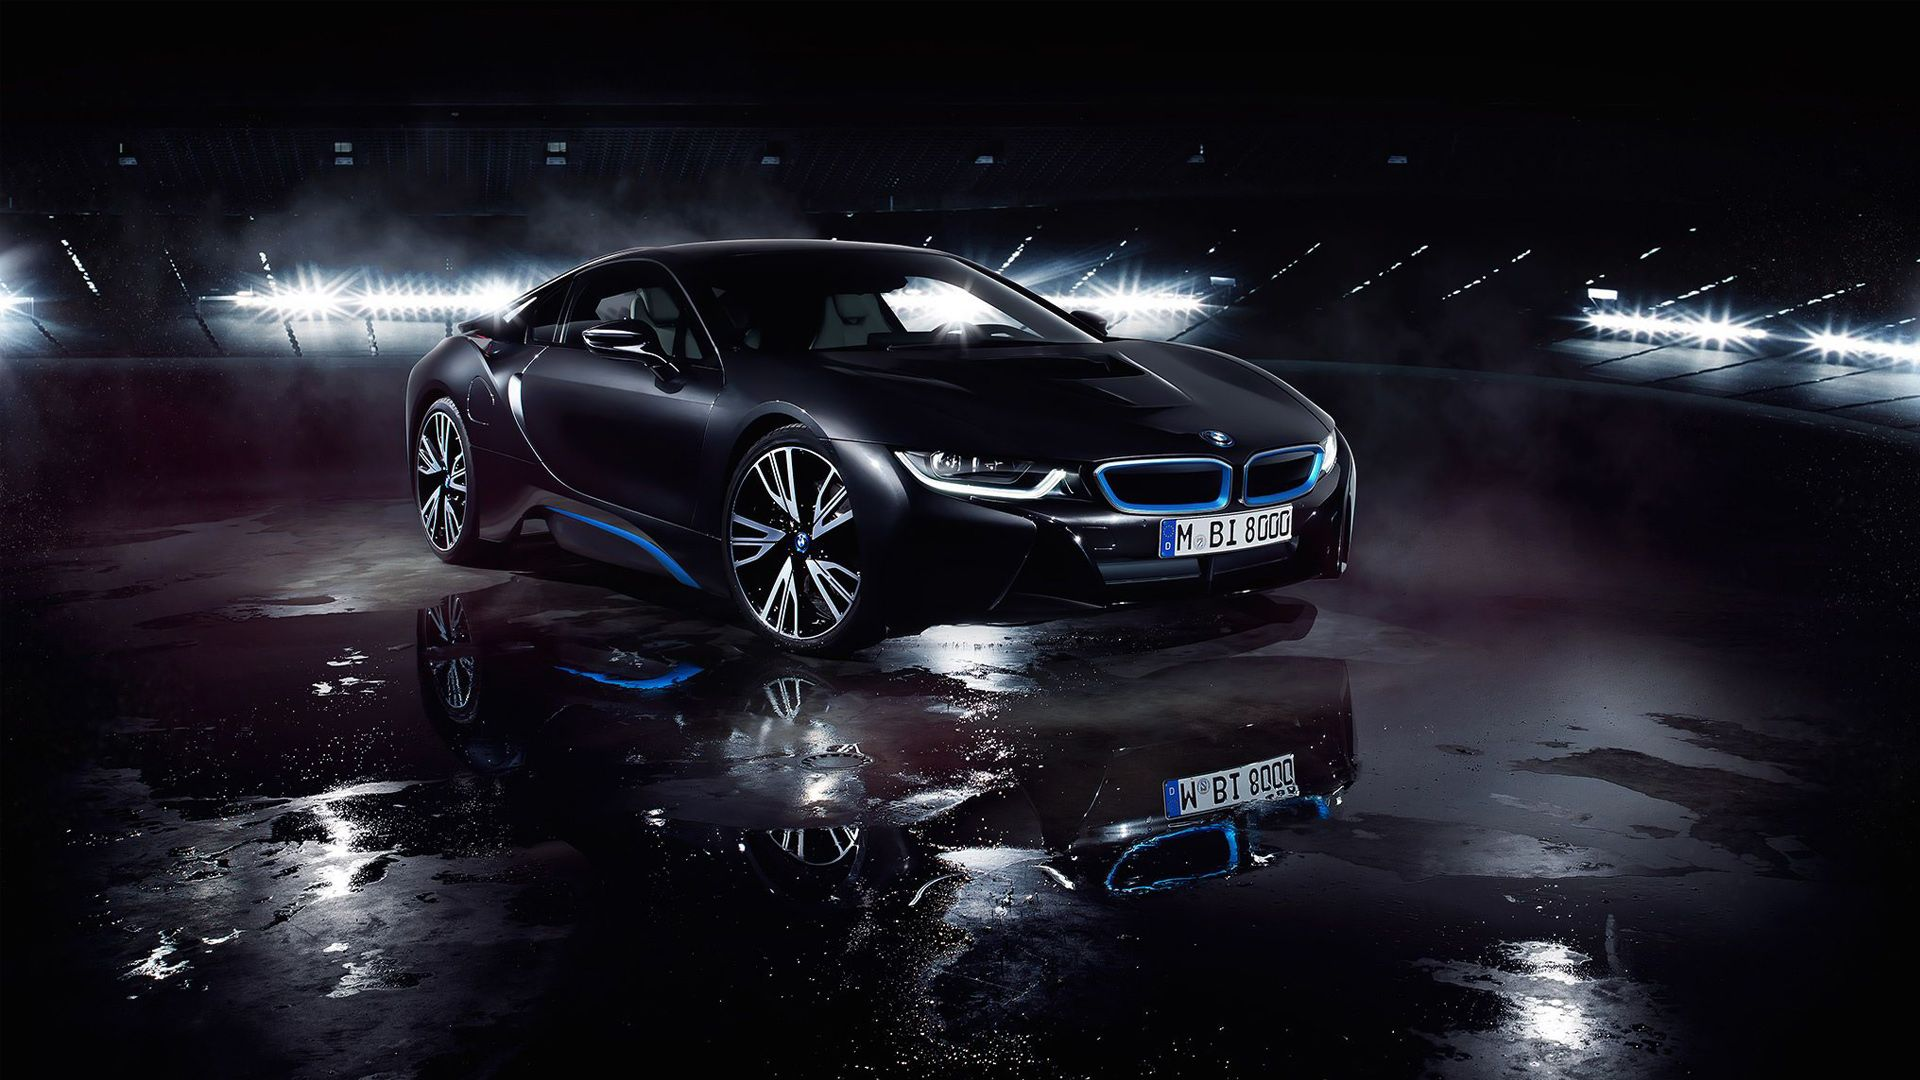 Bmw I8 Hd Wallpapers Top Free Bmw I8 Hd Backgrounds